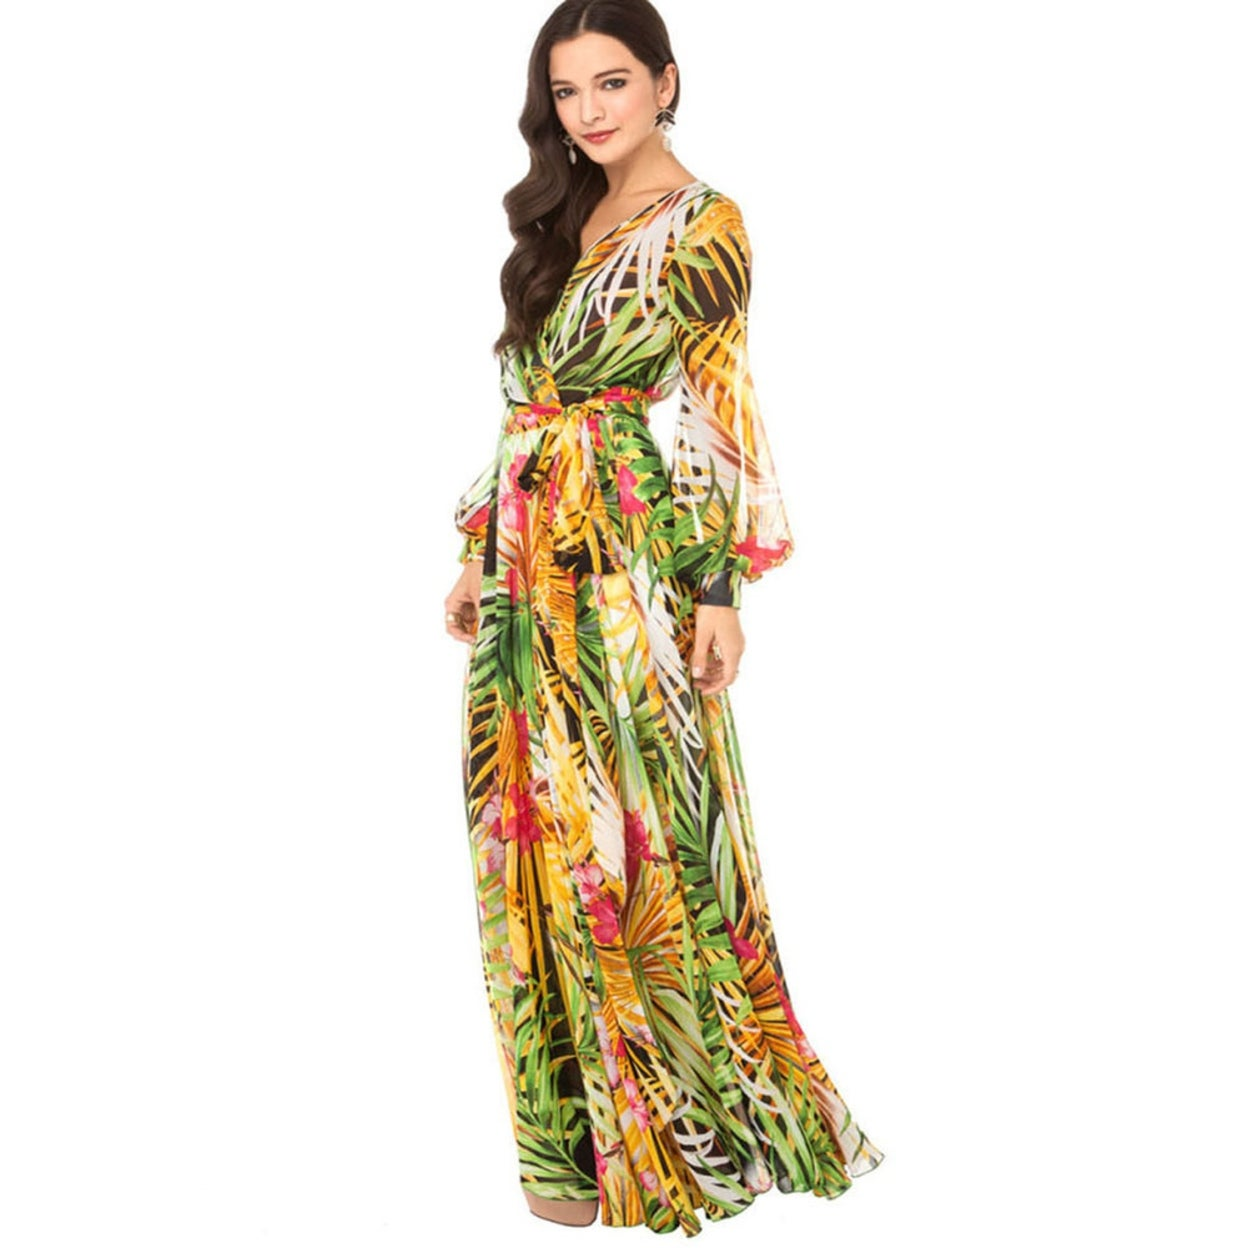 45bb18c36fb Shop Summer Beach V-Neck Long Maxi Boho Dress for Women Floral Printed  Chiffon Dresses Robe - Free Shipping On Orders Over $45 - Overstock -  23030548